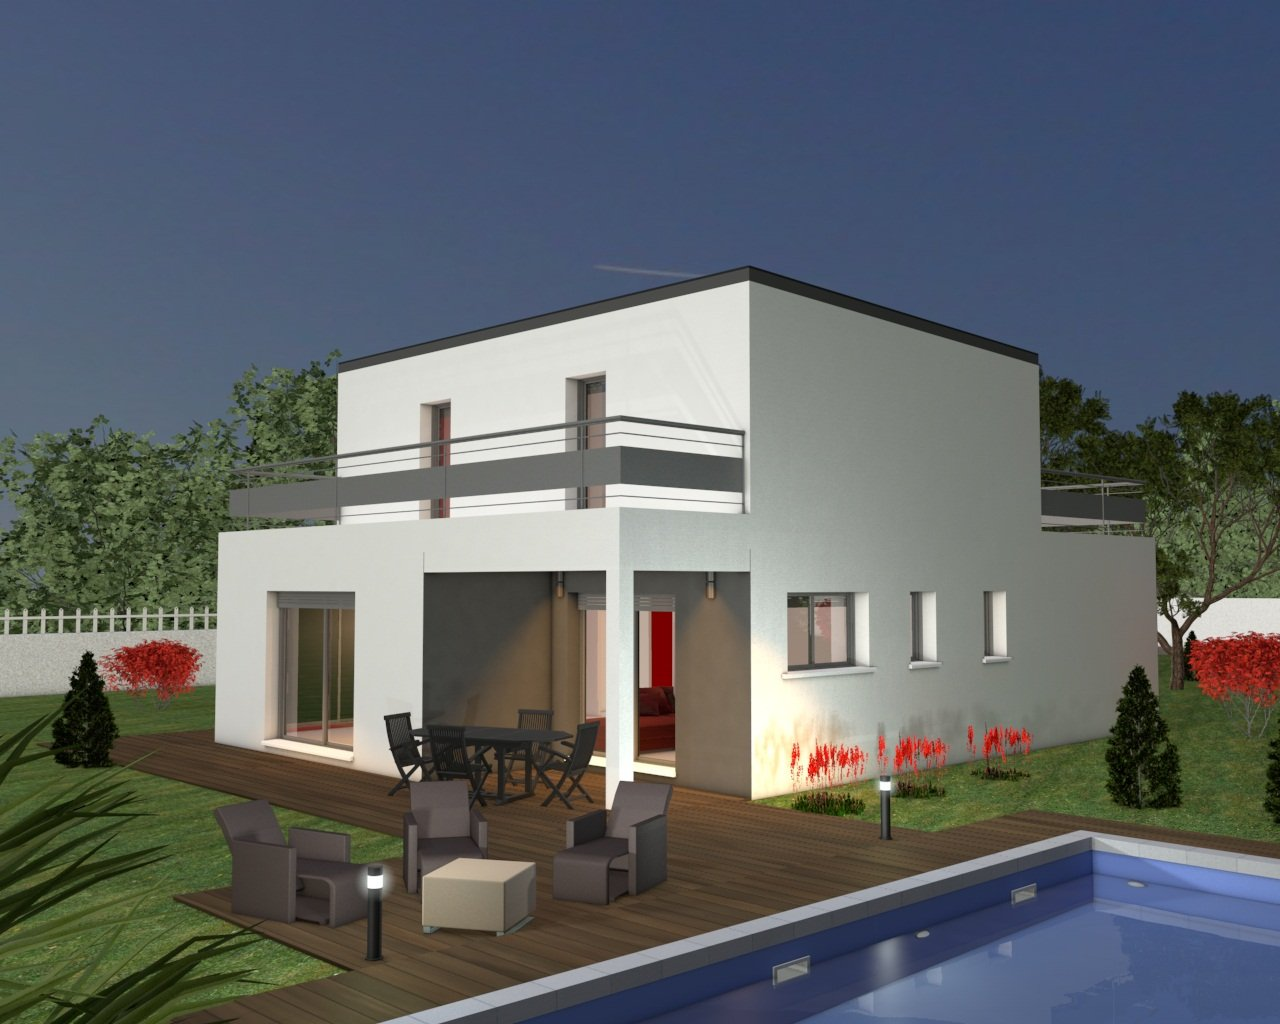 Immobilier plans maison toit terrasse for Appartement maison